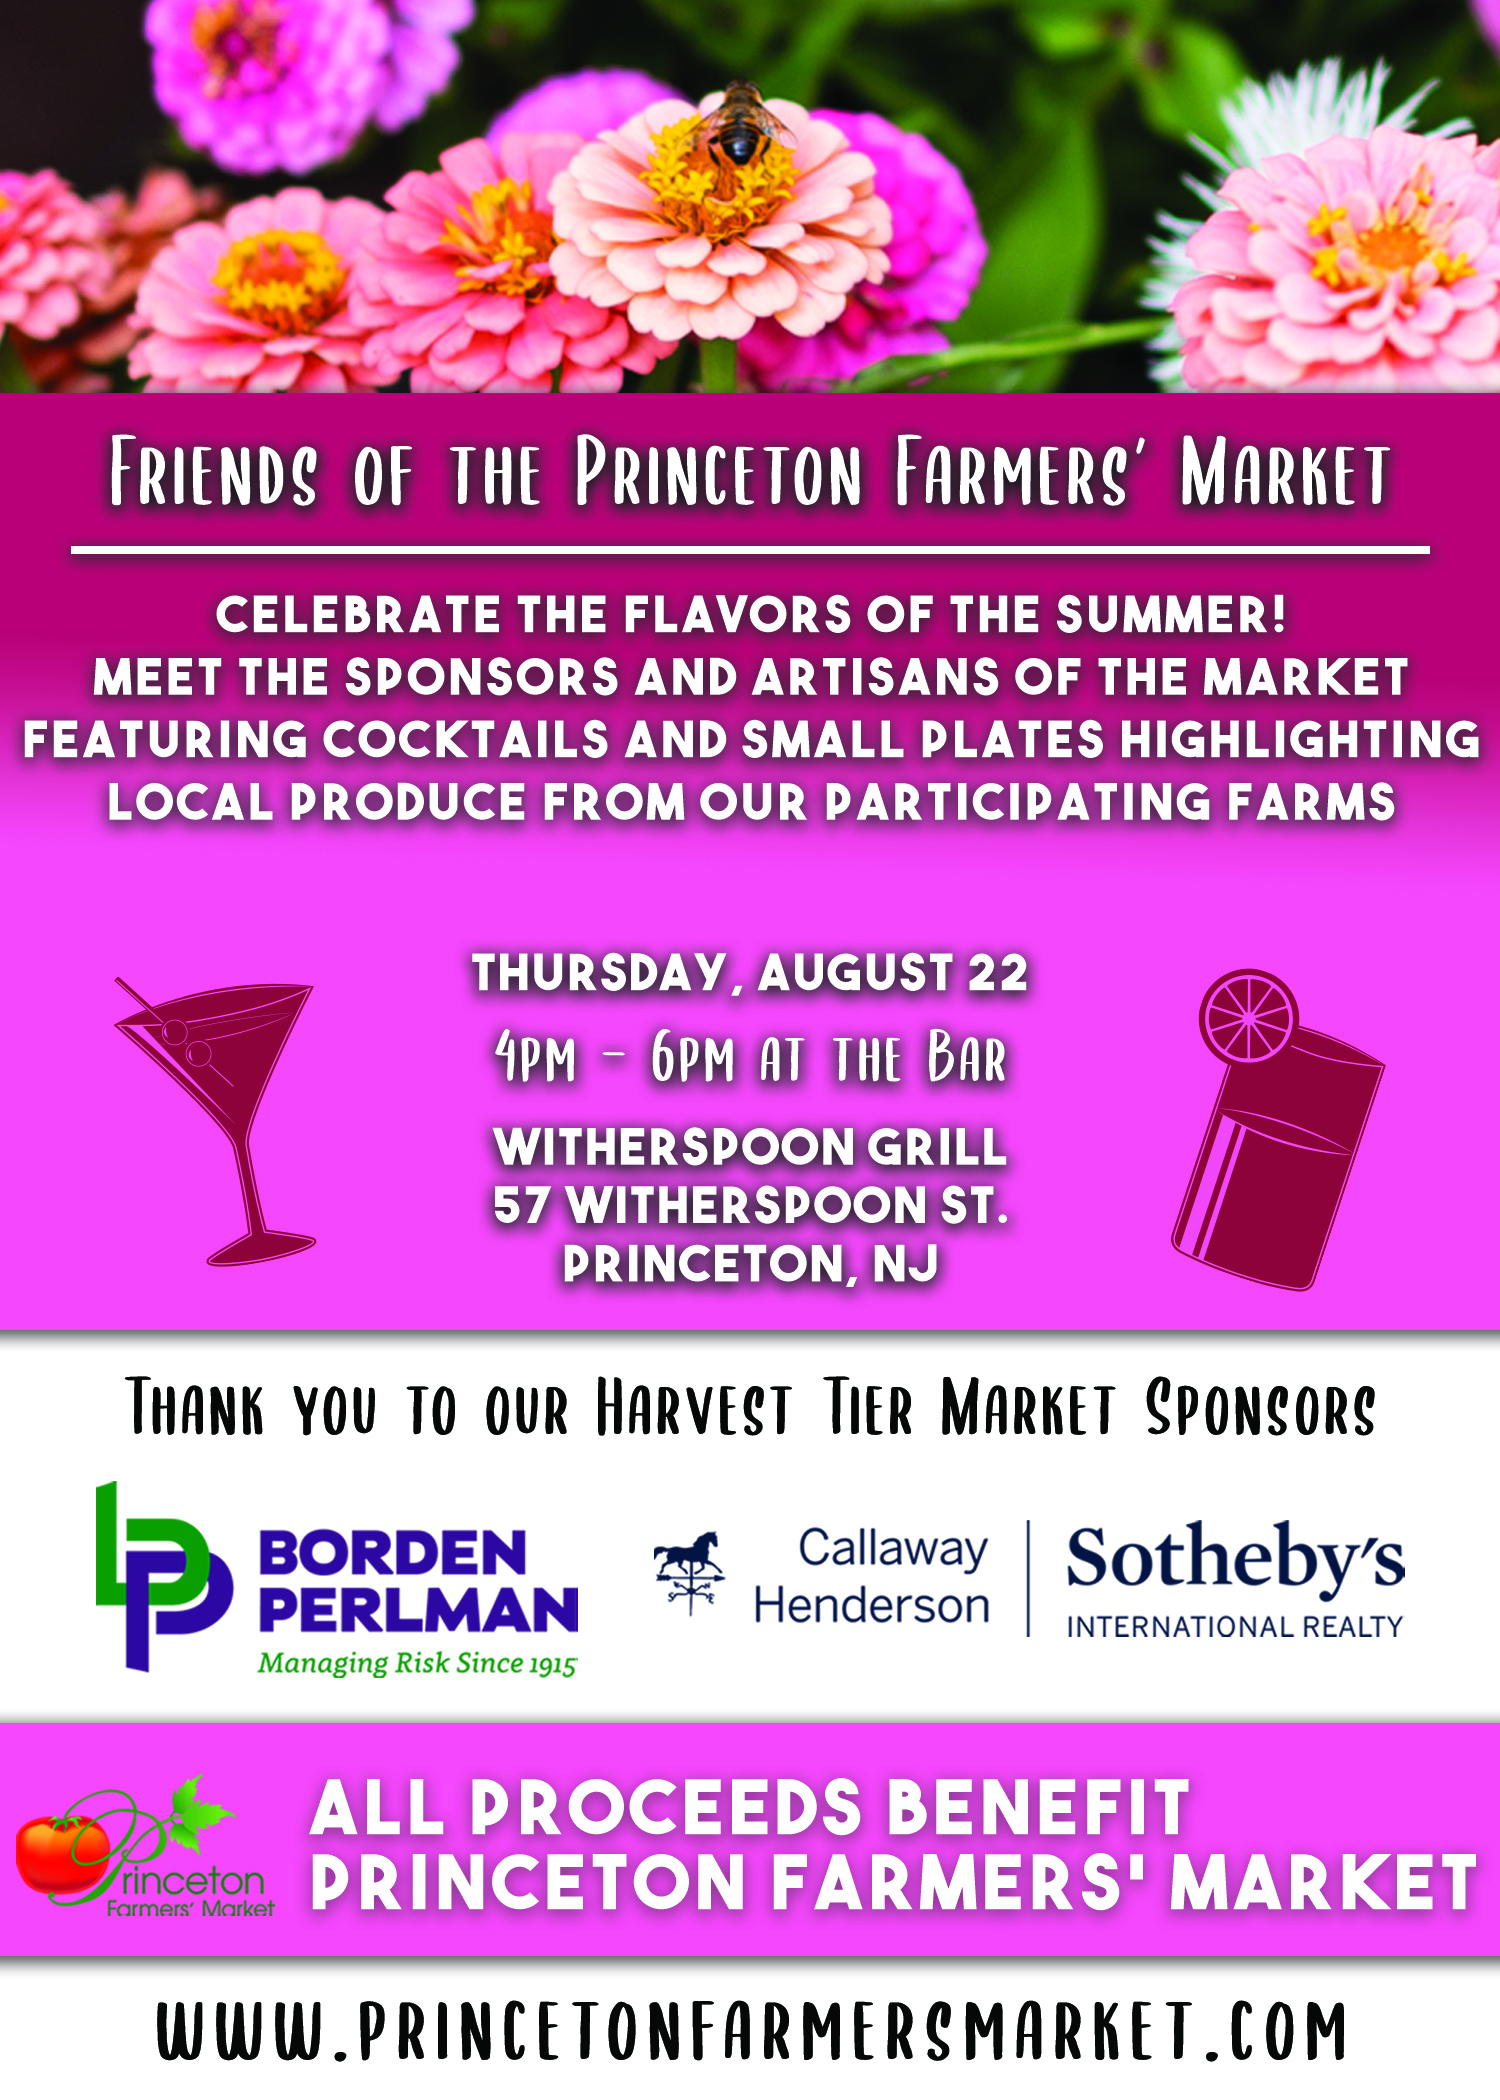 Friends of the Princeton Farmers' Market - August 22